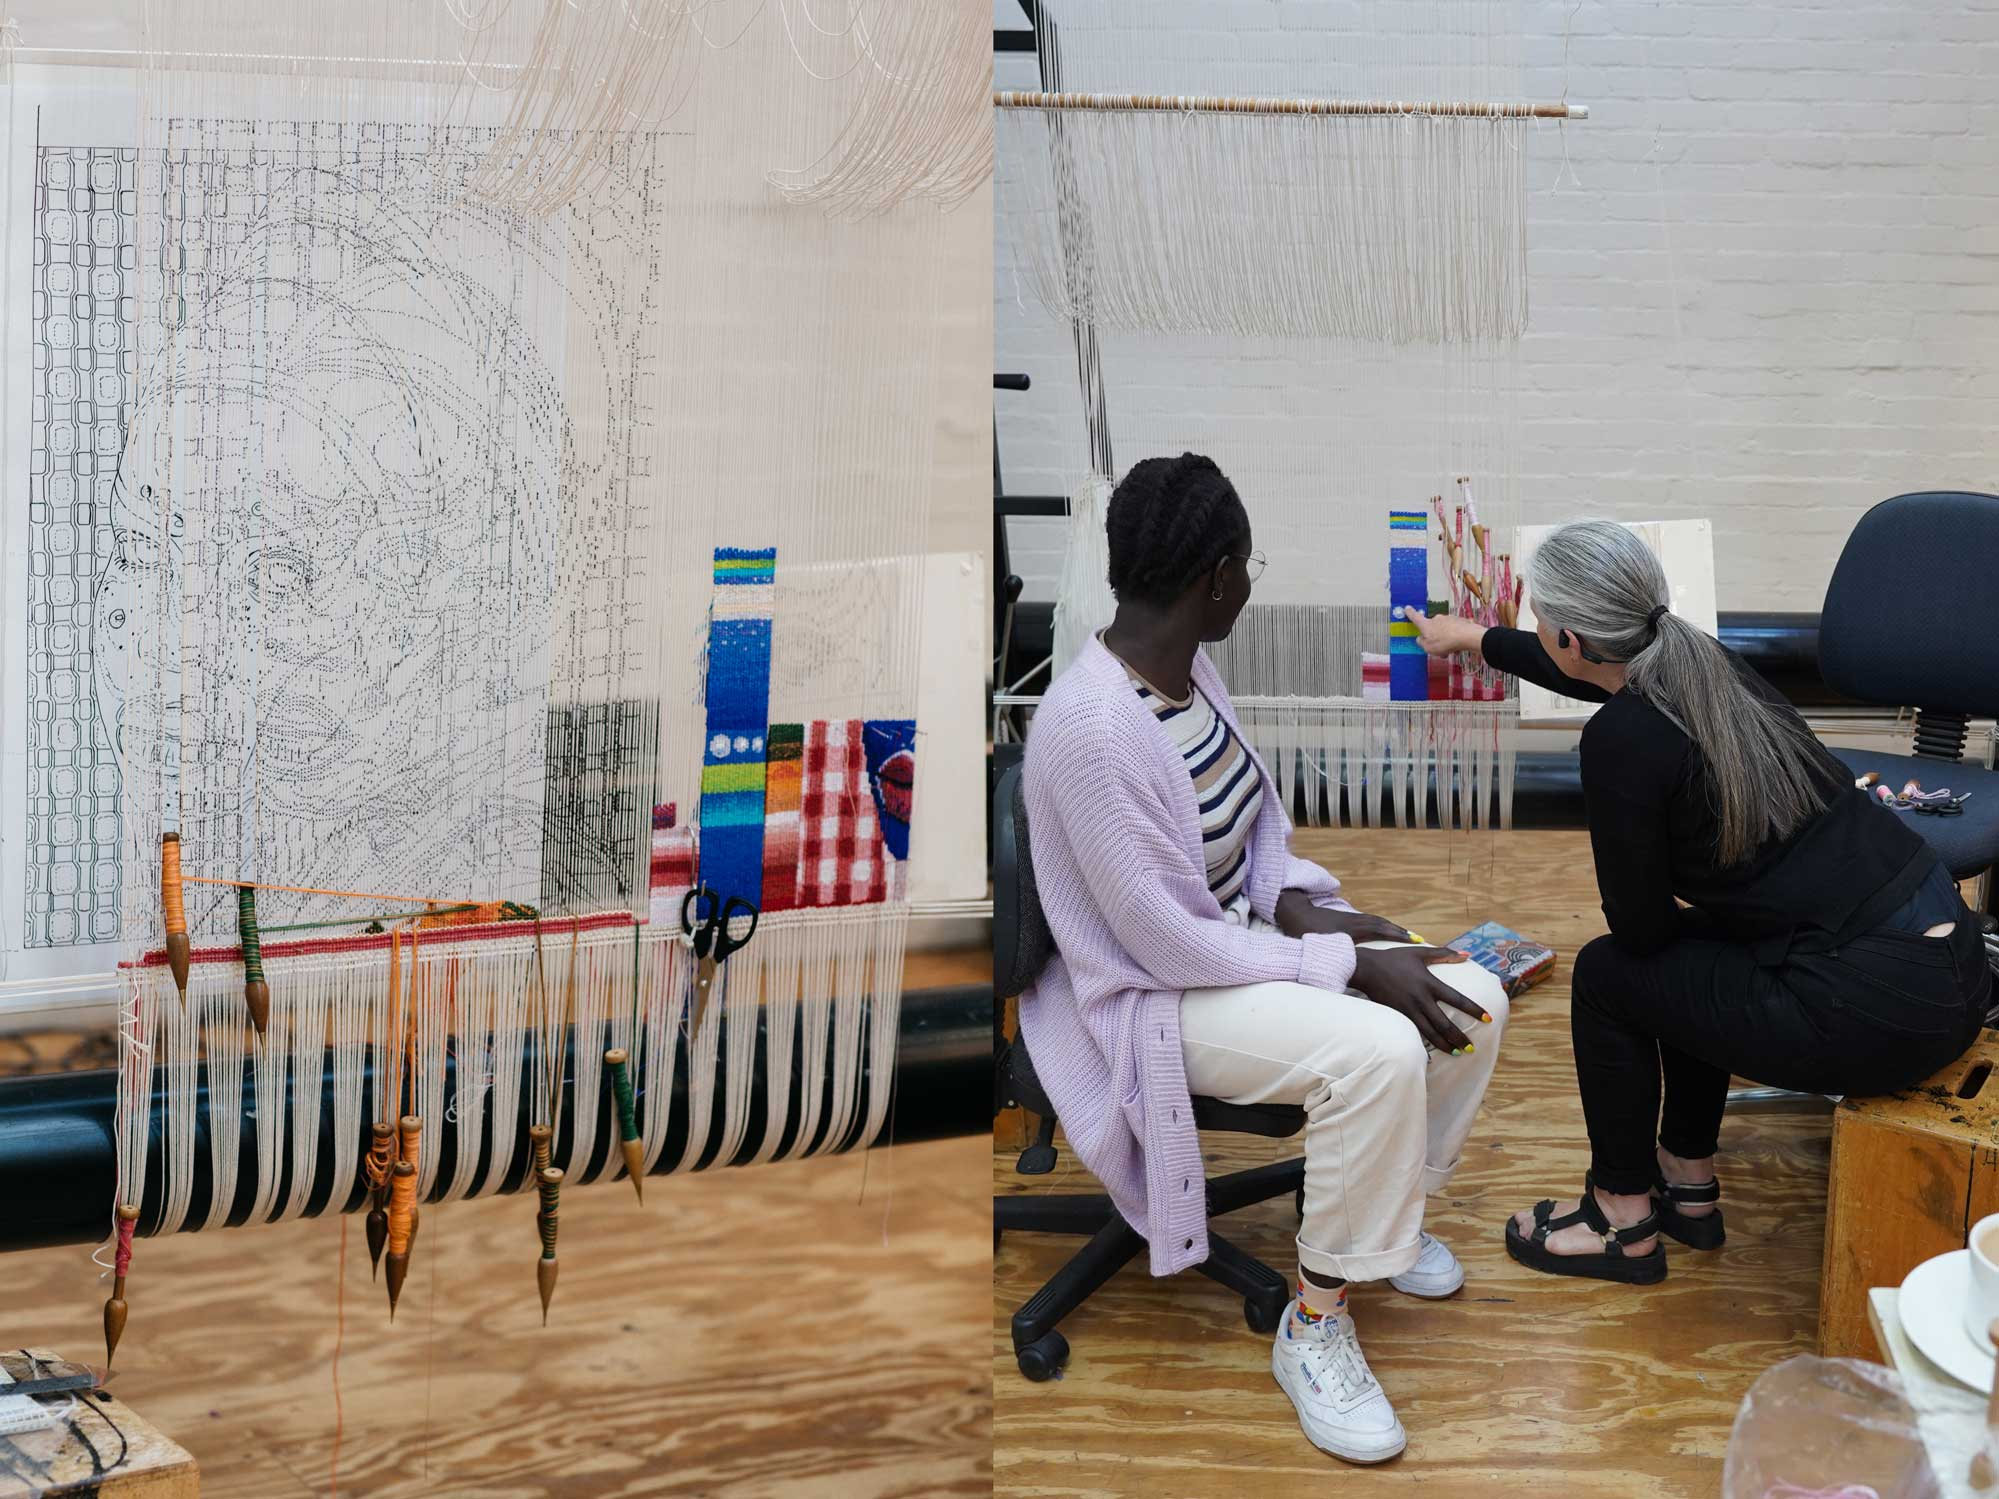 Left: In progress: 'Self Portrait in July (4)', 2021, designed by Atong Atem, woven by Pamela Joyce. Image by Marie-Luise Skibbe. Right: Atong Atem and Pamela Joyce at the ATW, 2021. Image by ATW.